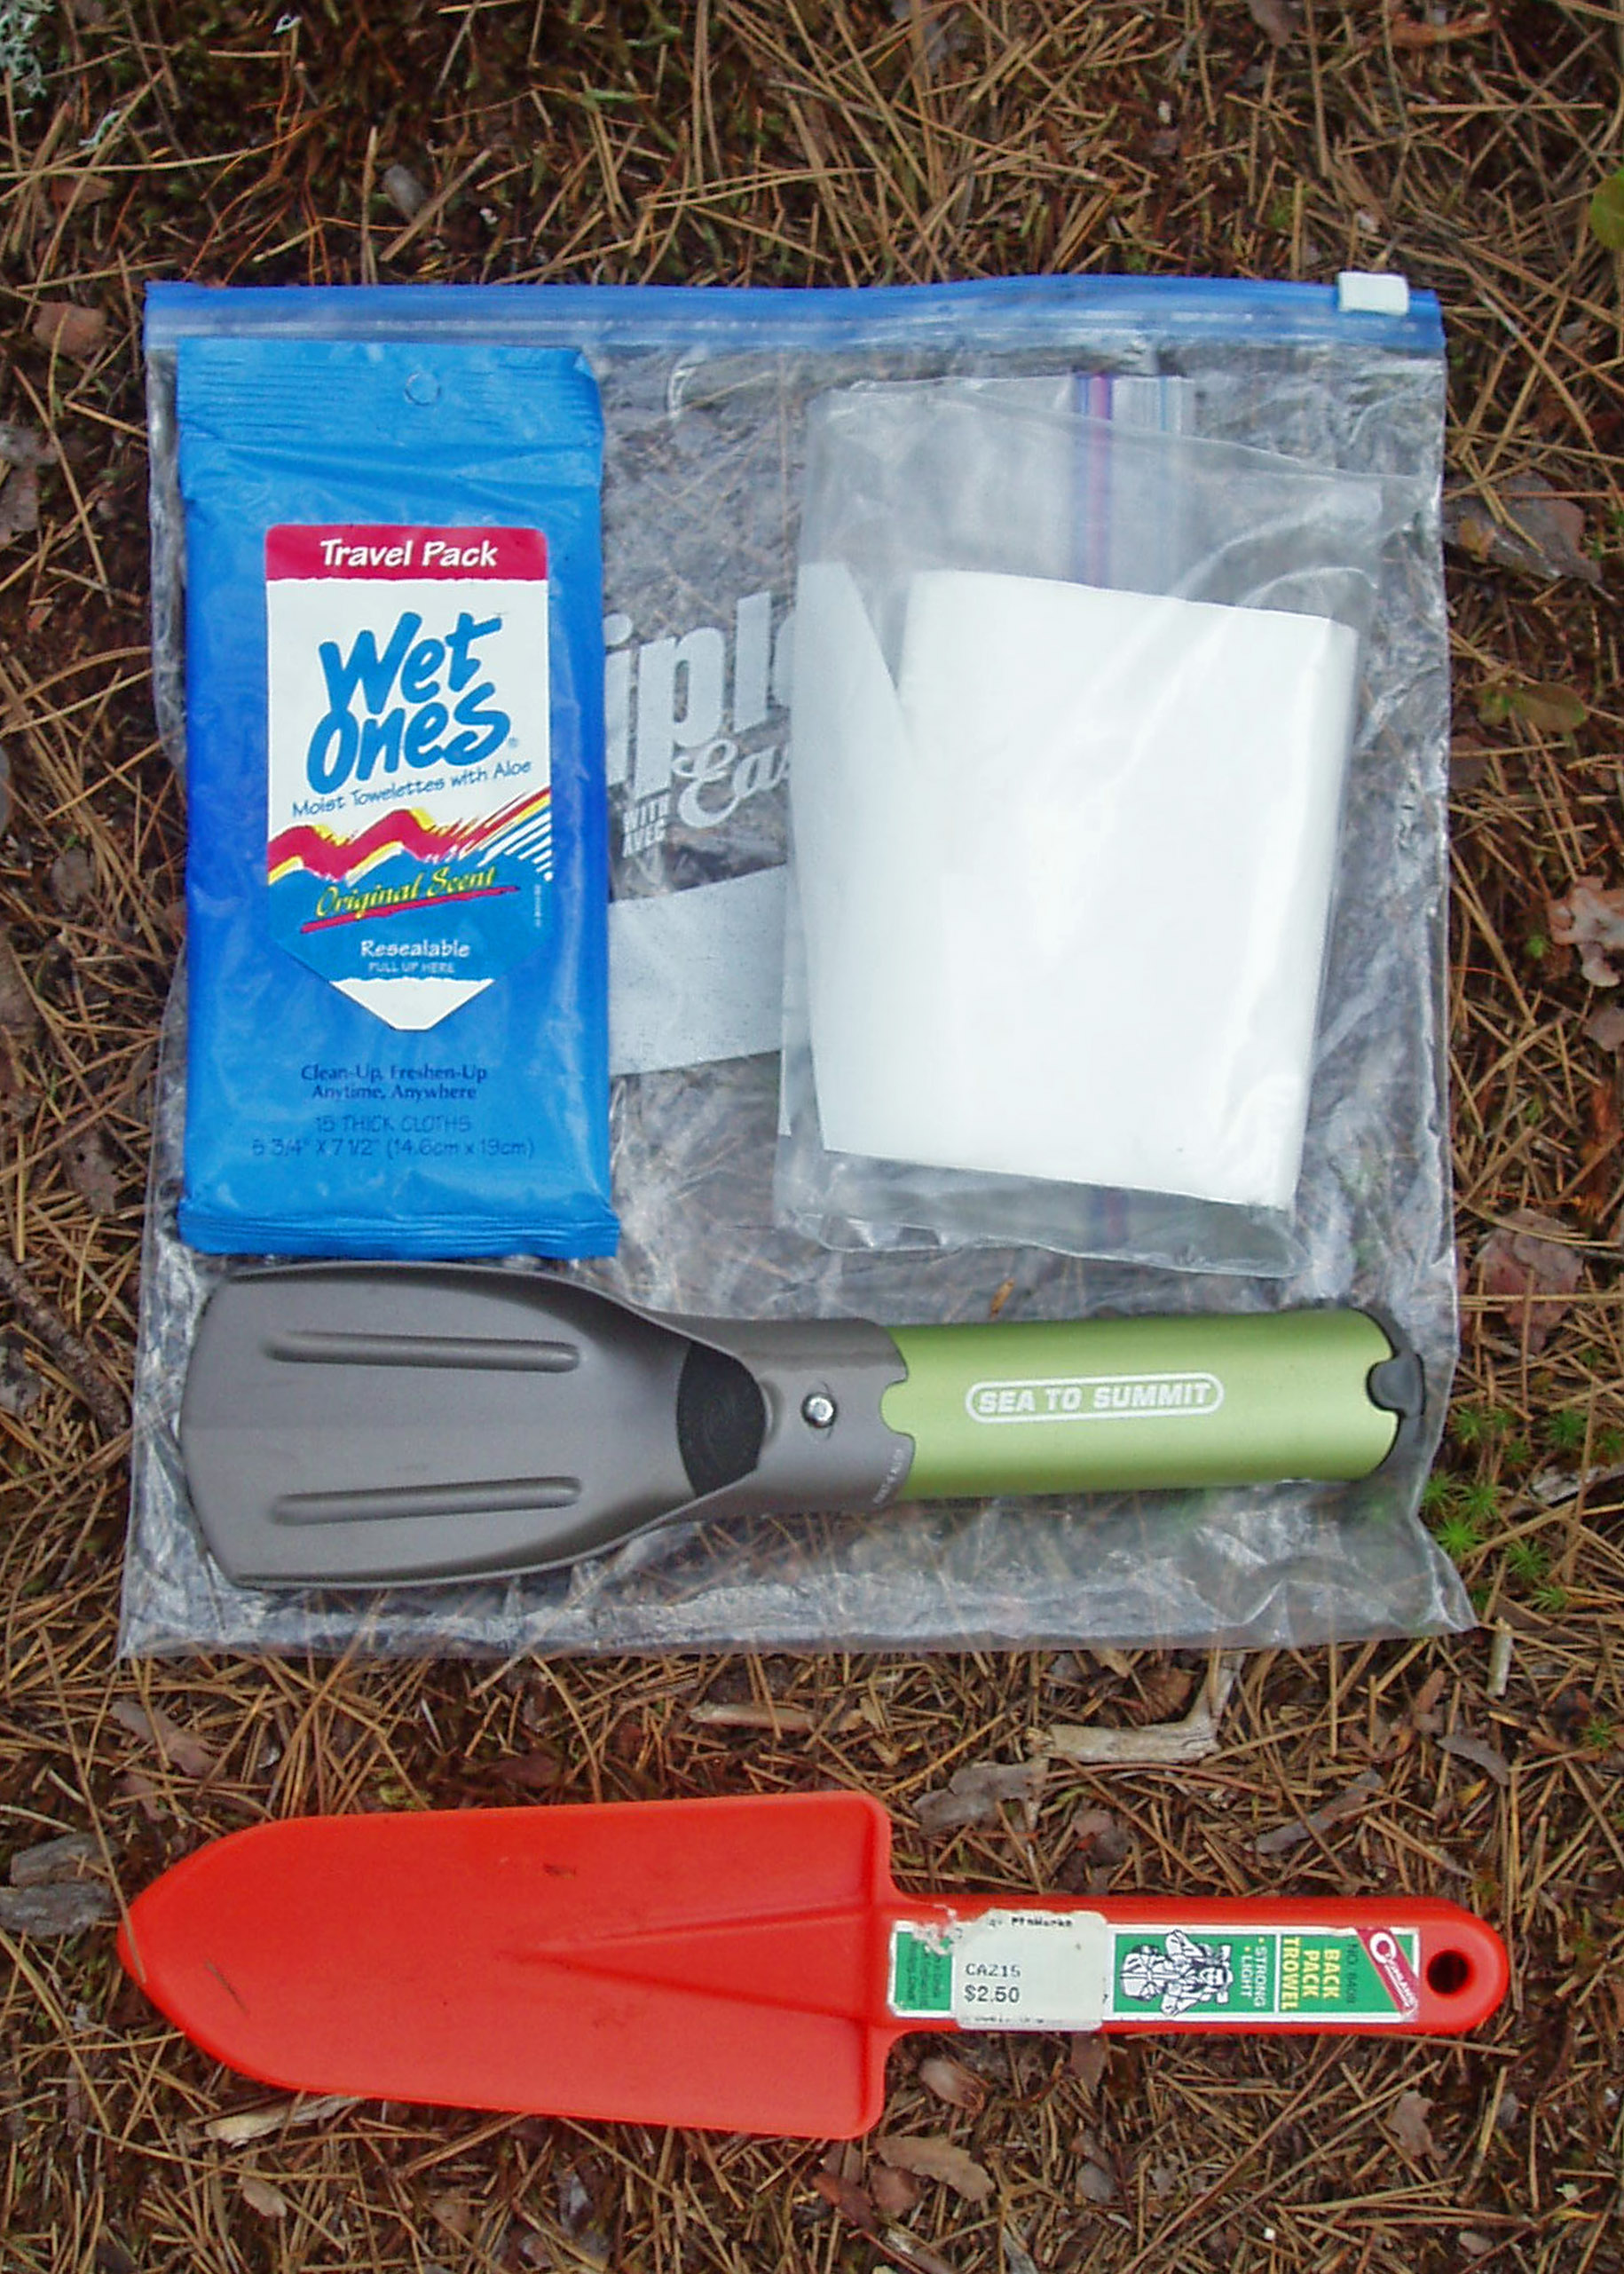 Keeping things clean in the backcountry isn't that hard. So don't let personal hygiene fears keep you from exploring.